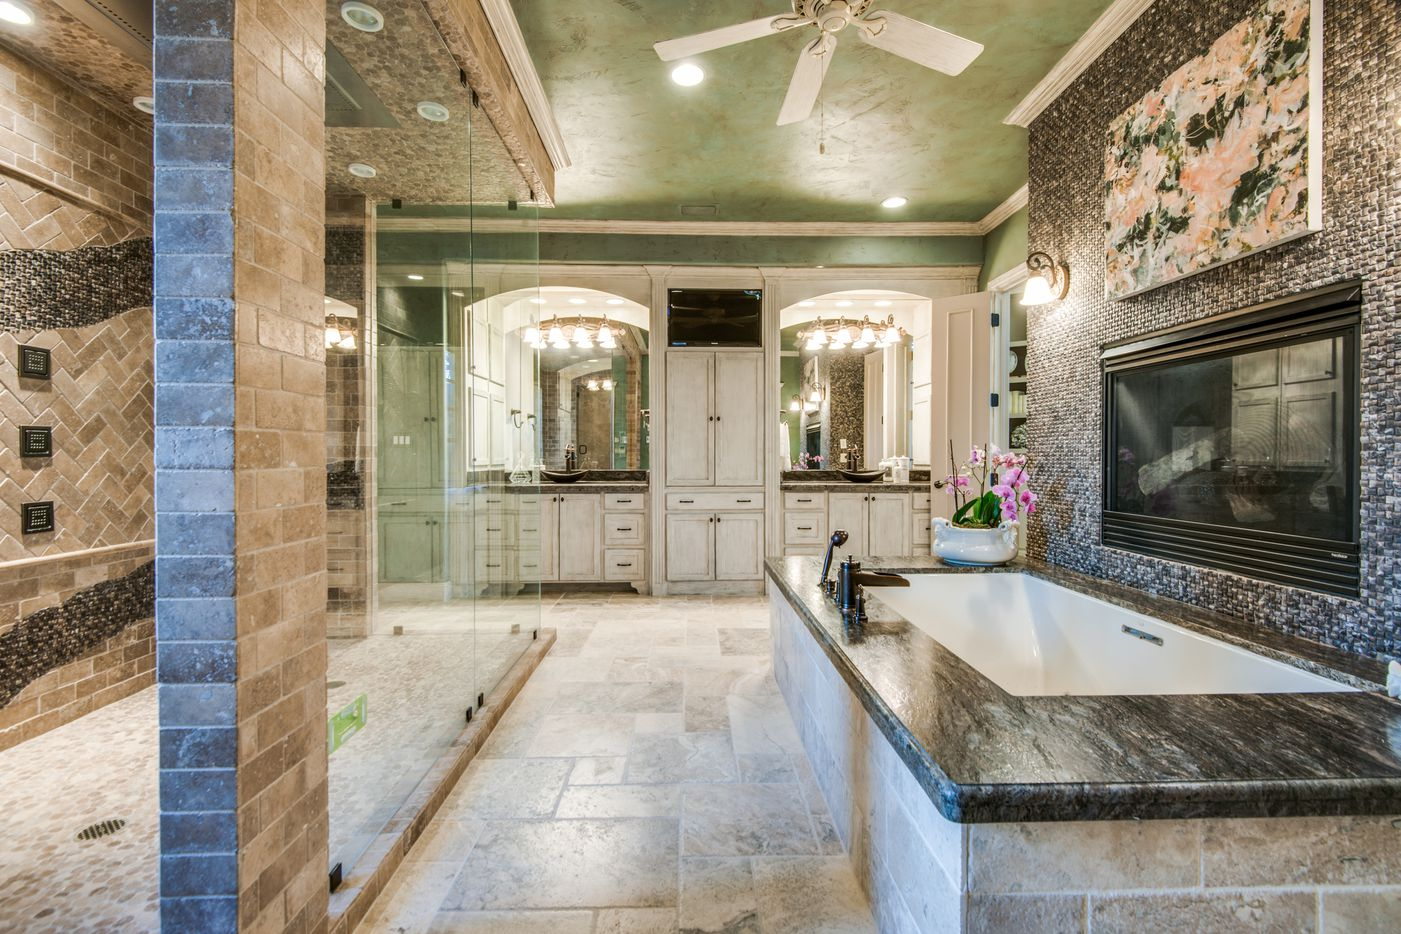 A look at the property at 5101 Kensington Court in Flower Mound.